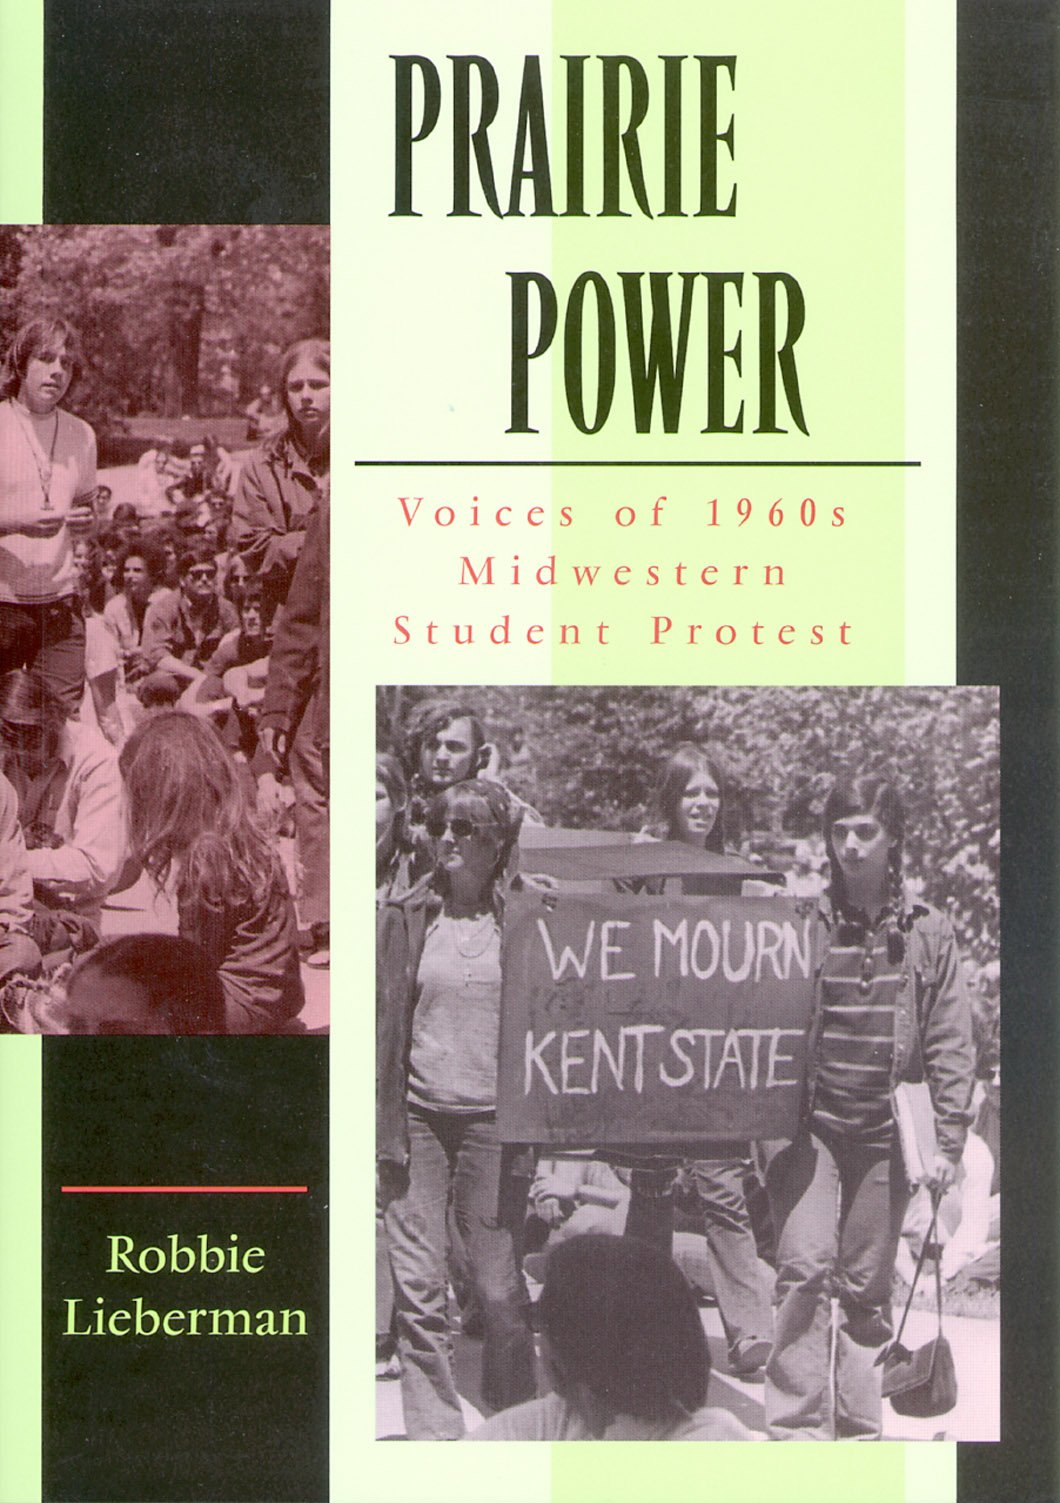 Book cover for Prairie Power: Voices of 1960s Midwestern Student Protest